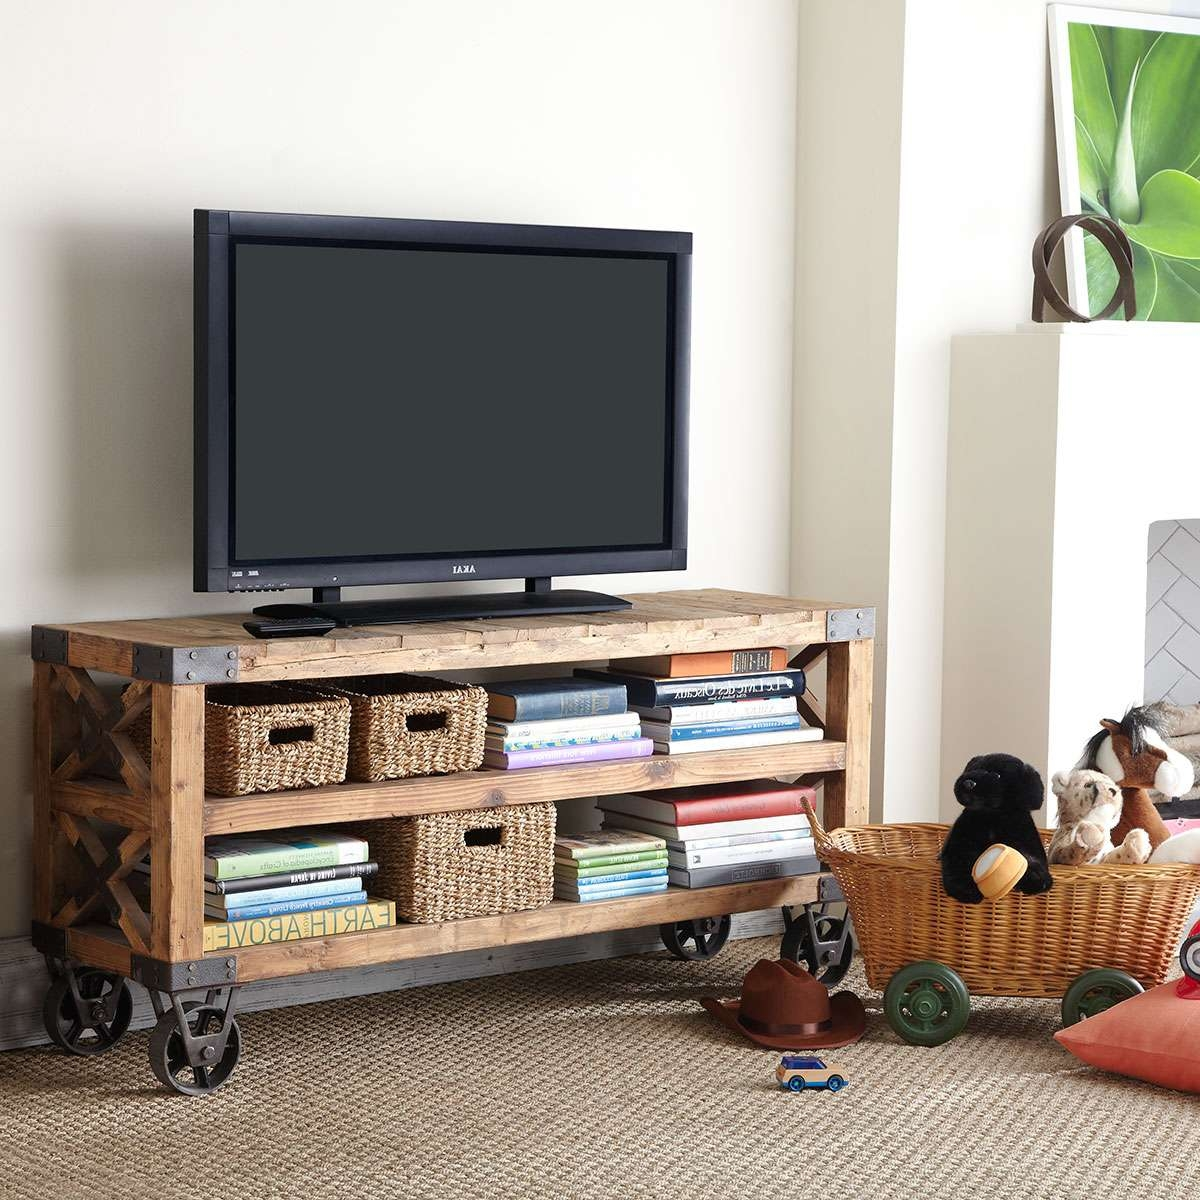 Tv : 35 Supurb Reclaimed Wood Tv Stands Media Consoles Awesome Intended For Rustic Looking Tv Stands (View 8 of 15)